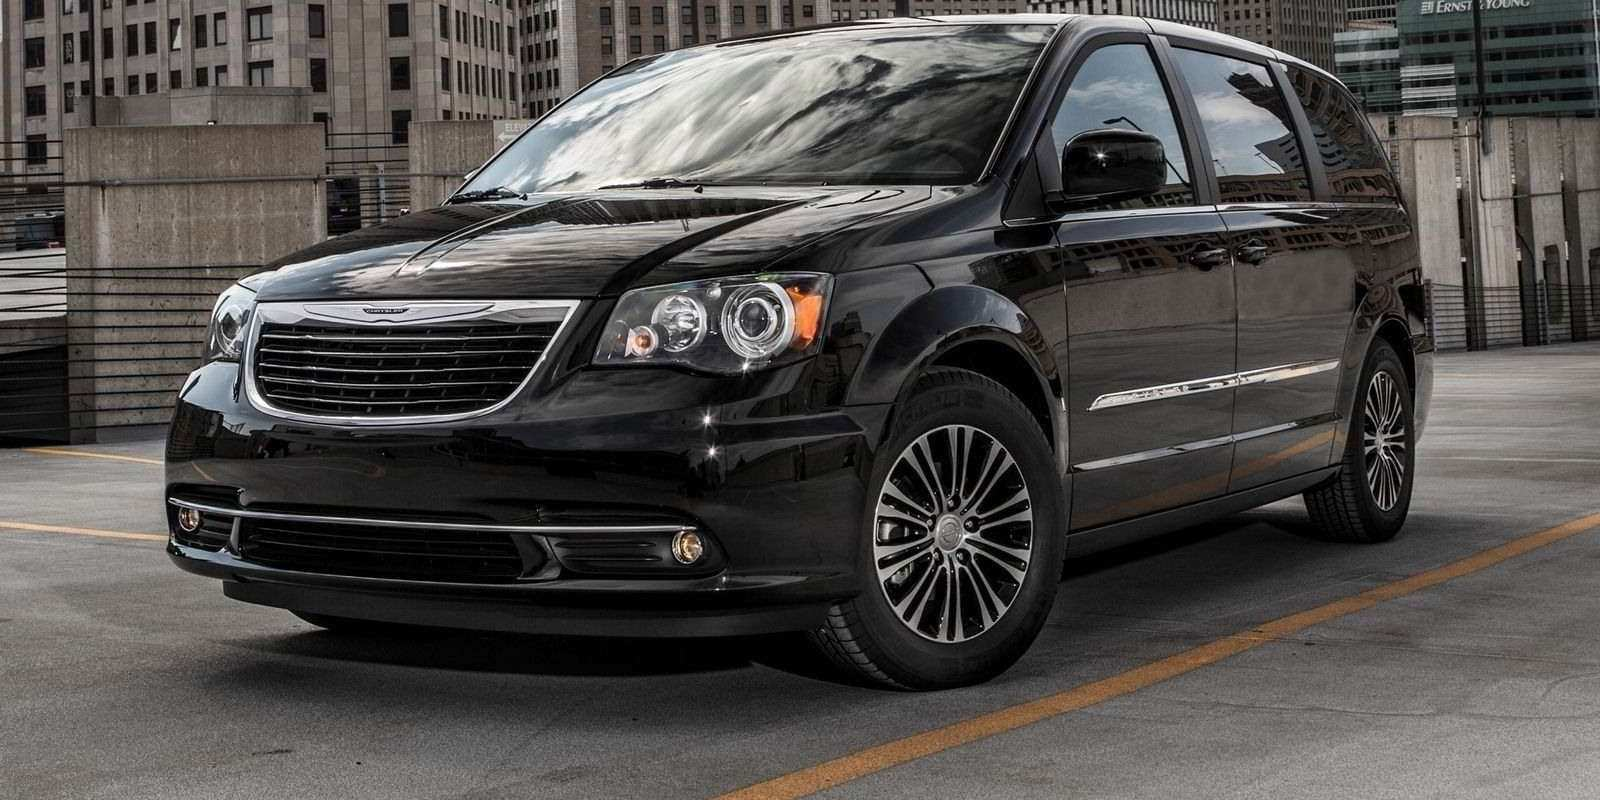 64 New 2020 Chrysler Town Country Price